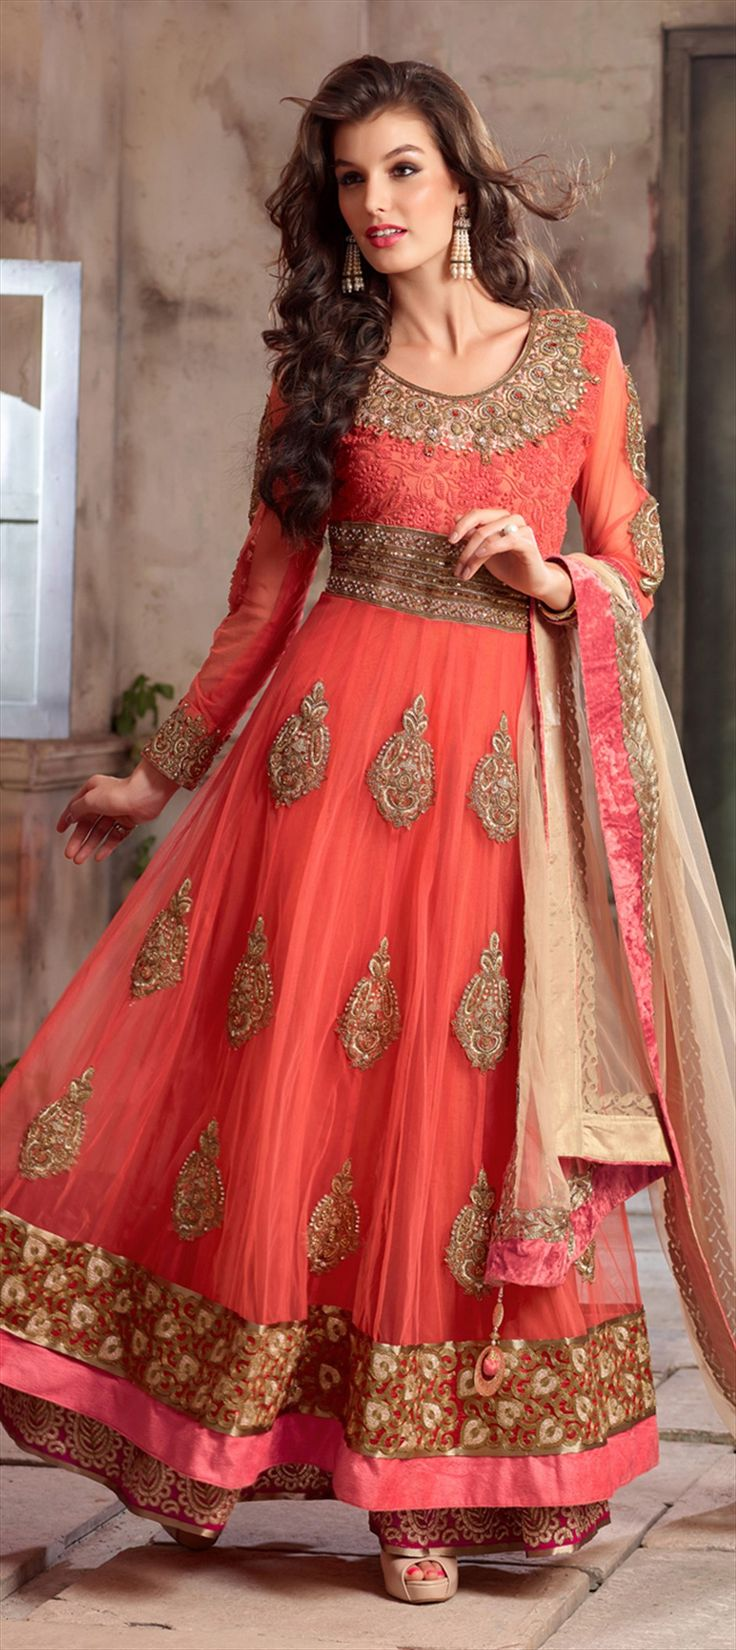 420540: Orange color family semi-stiched Anarkali Suits.